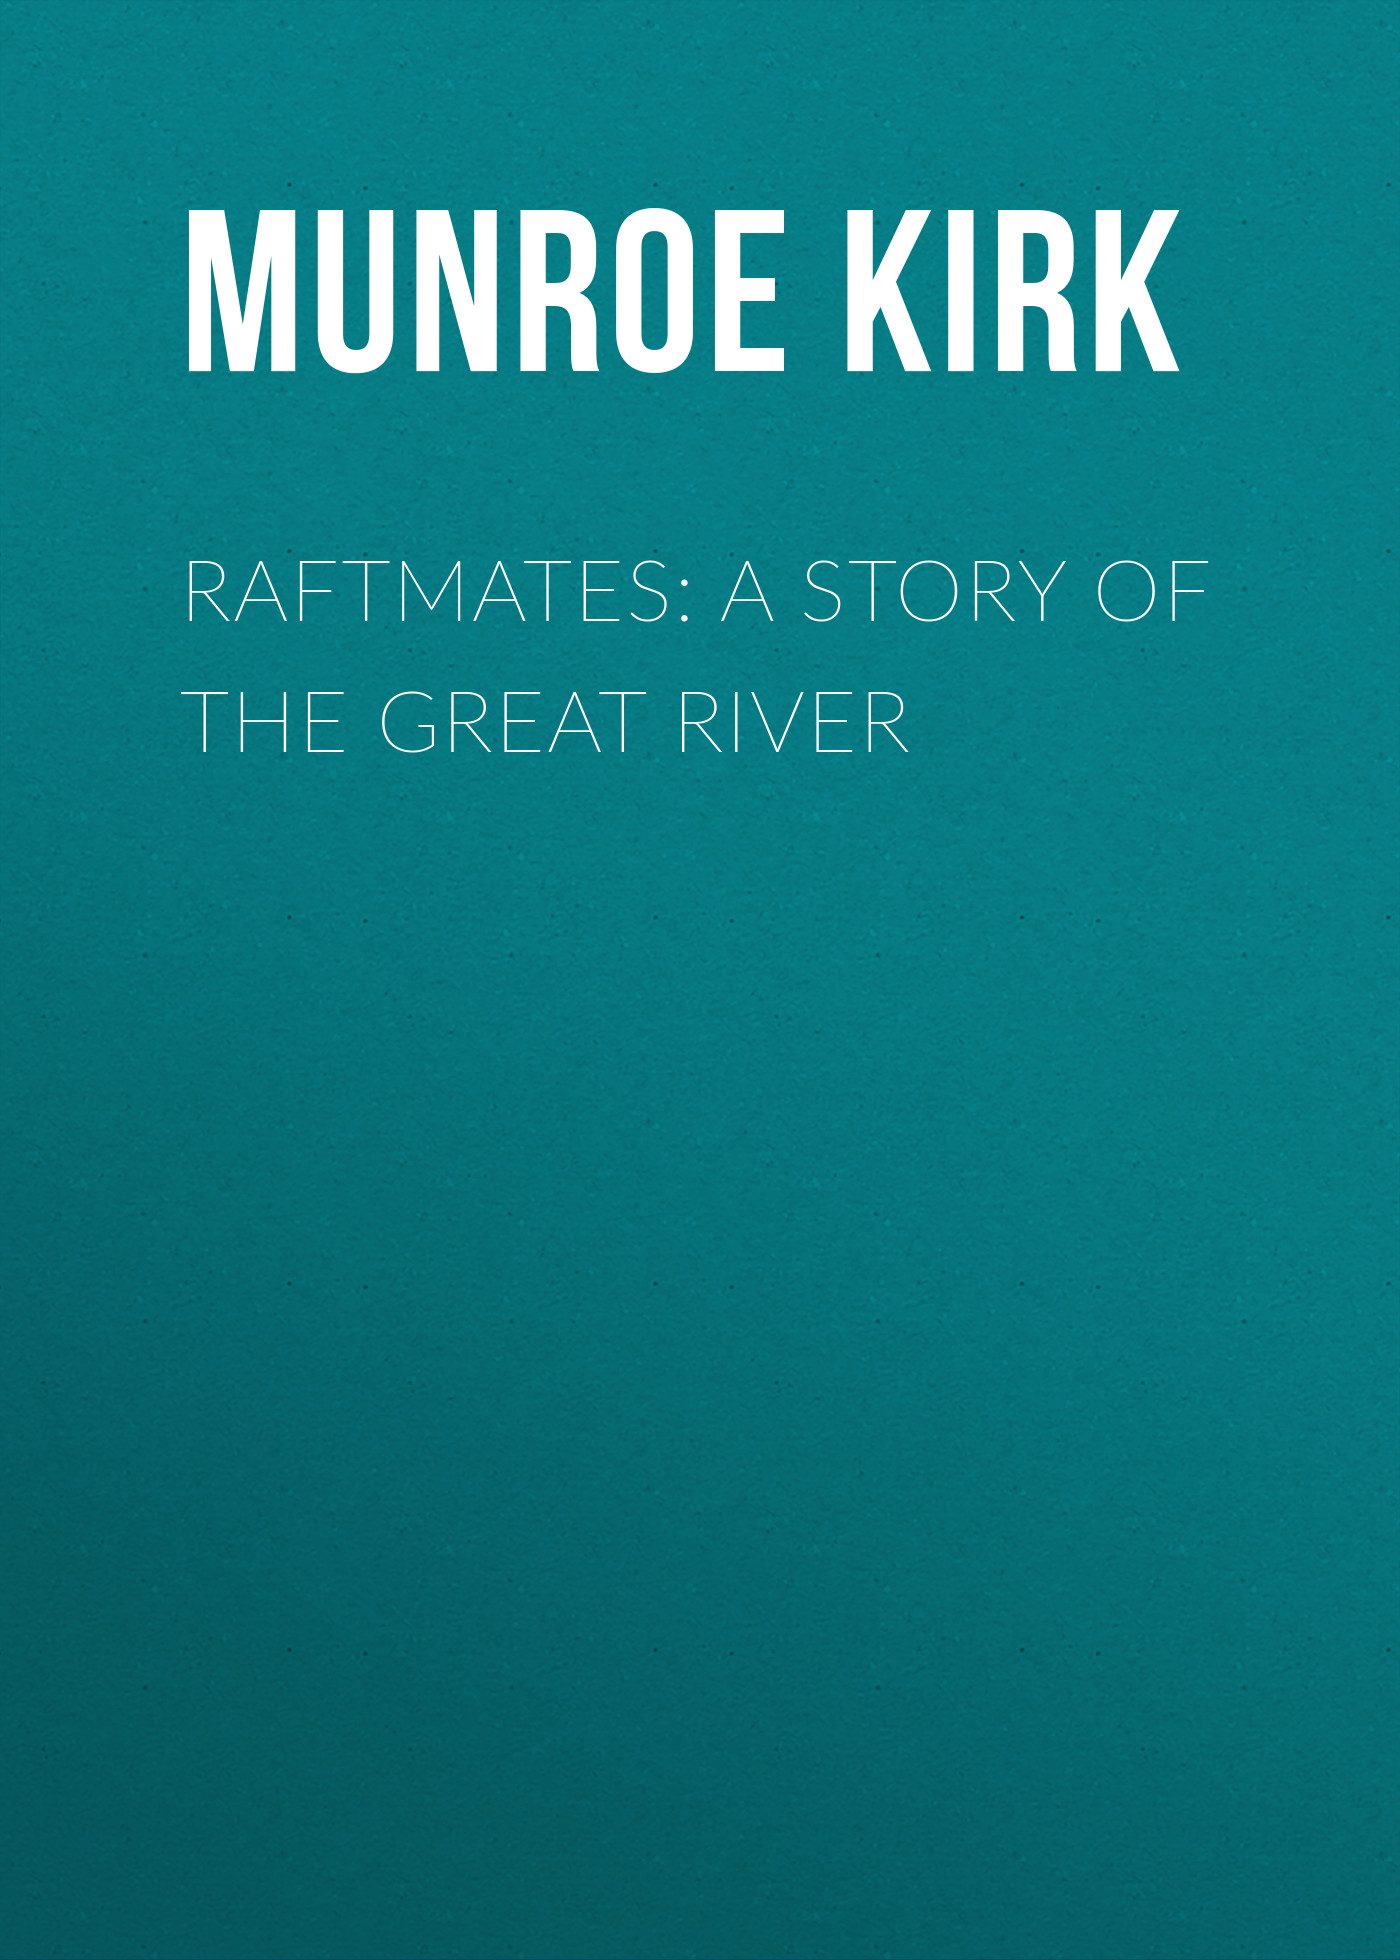 Munroe Kirk Raftmates: A Story of the Great River